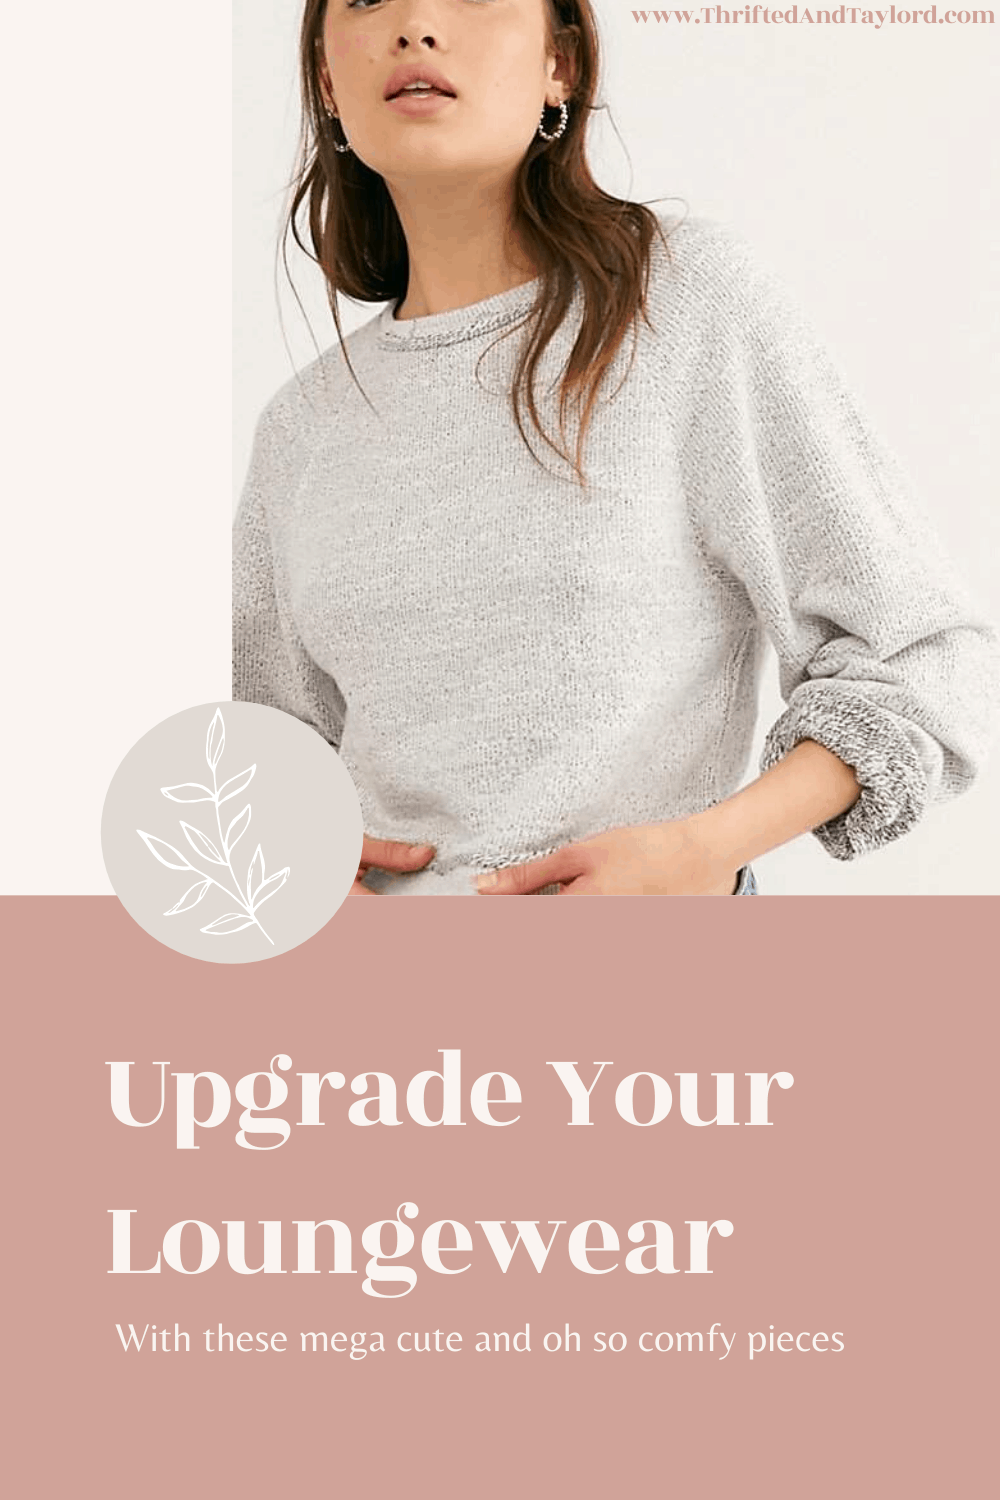 Upgrade Your Loungewear | With These Comfy and Cute Pieces